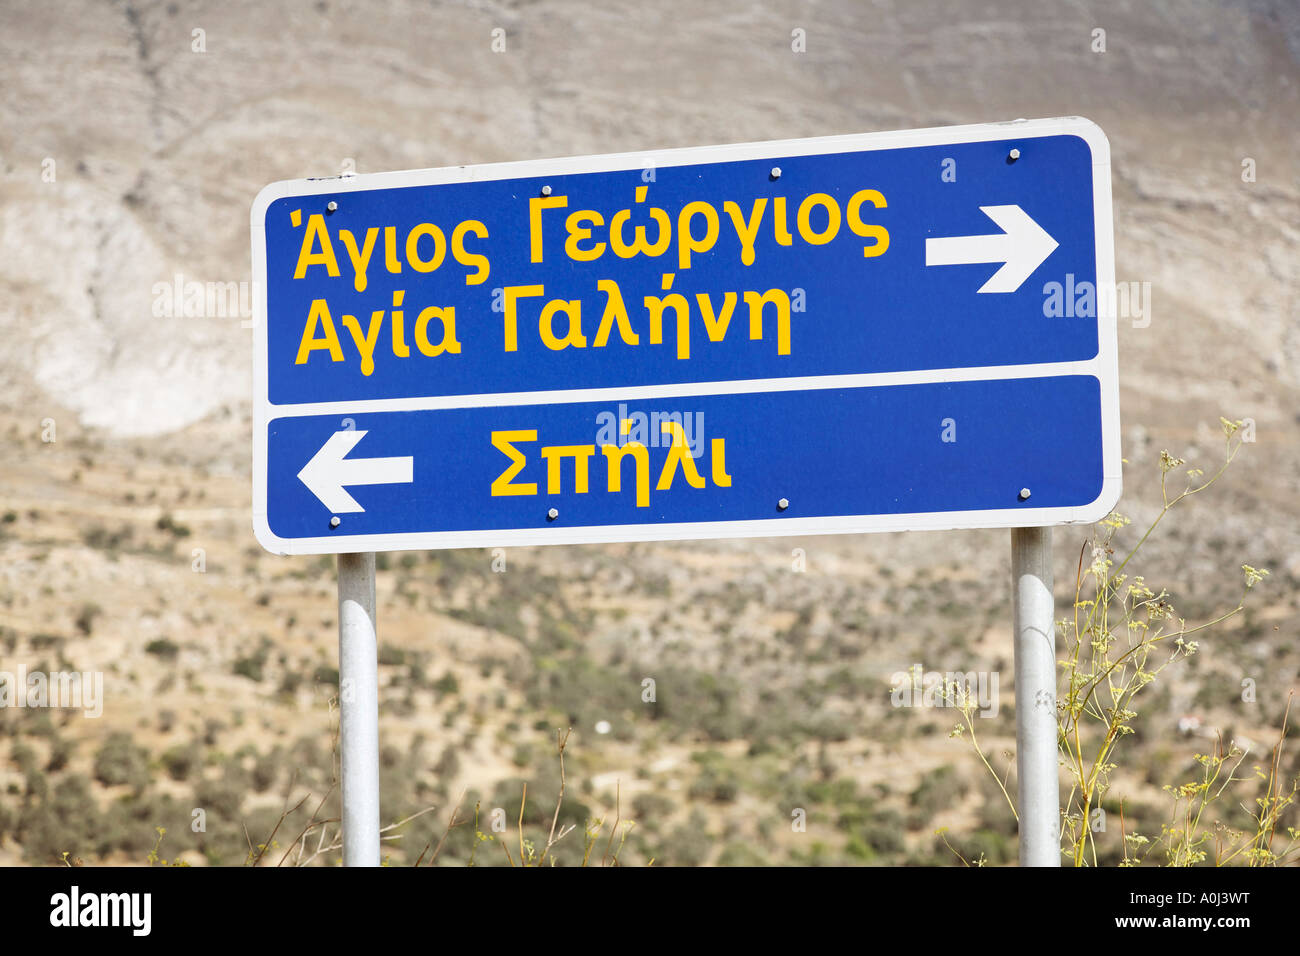 Direction sign in greek language at street in Crete, Greece - Stock Image